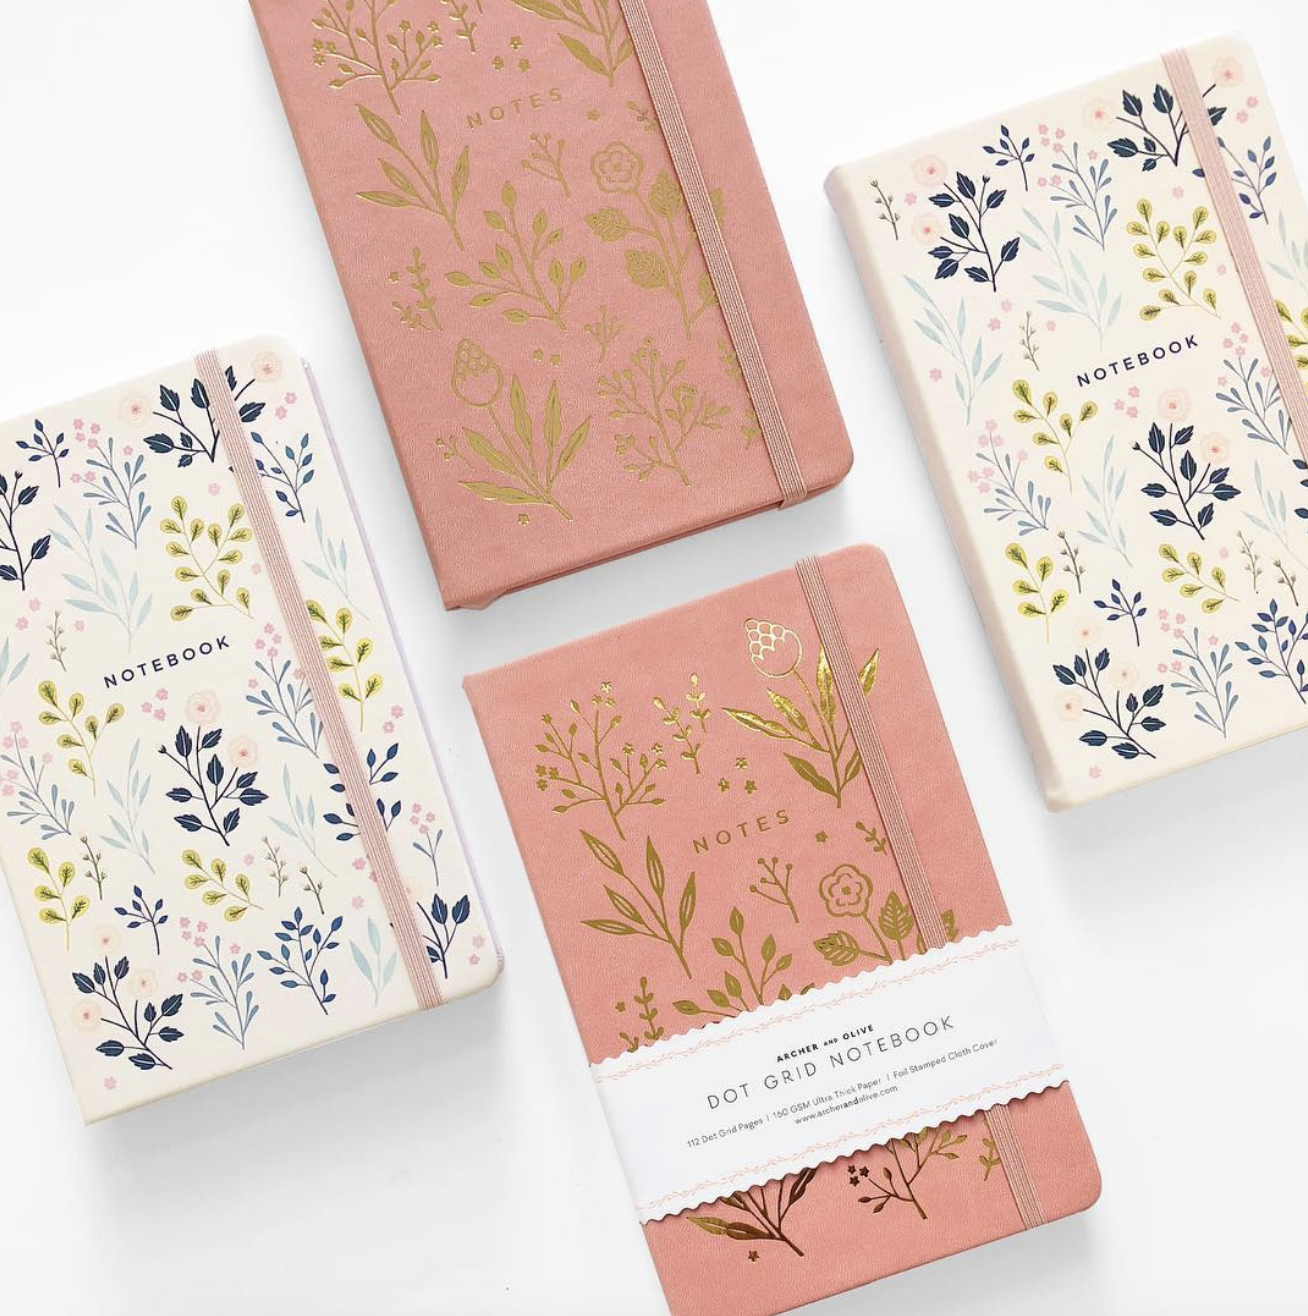 Product packaging design phoenix Sonora Leigh